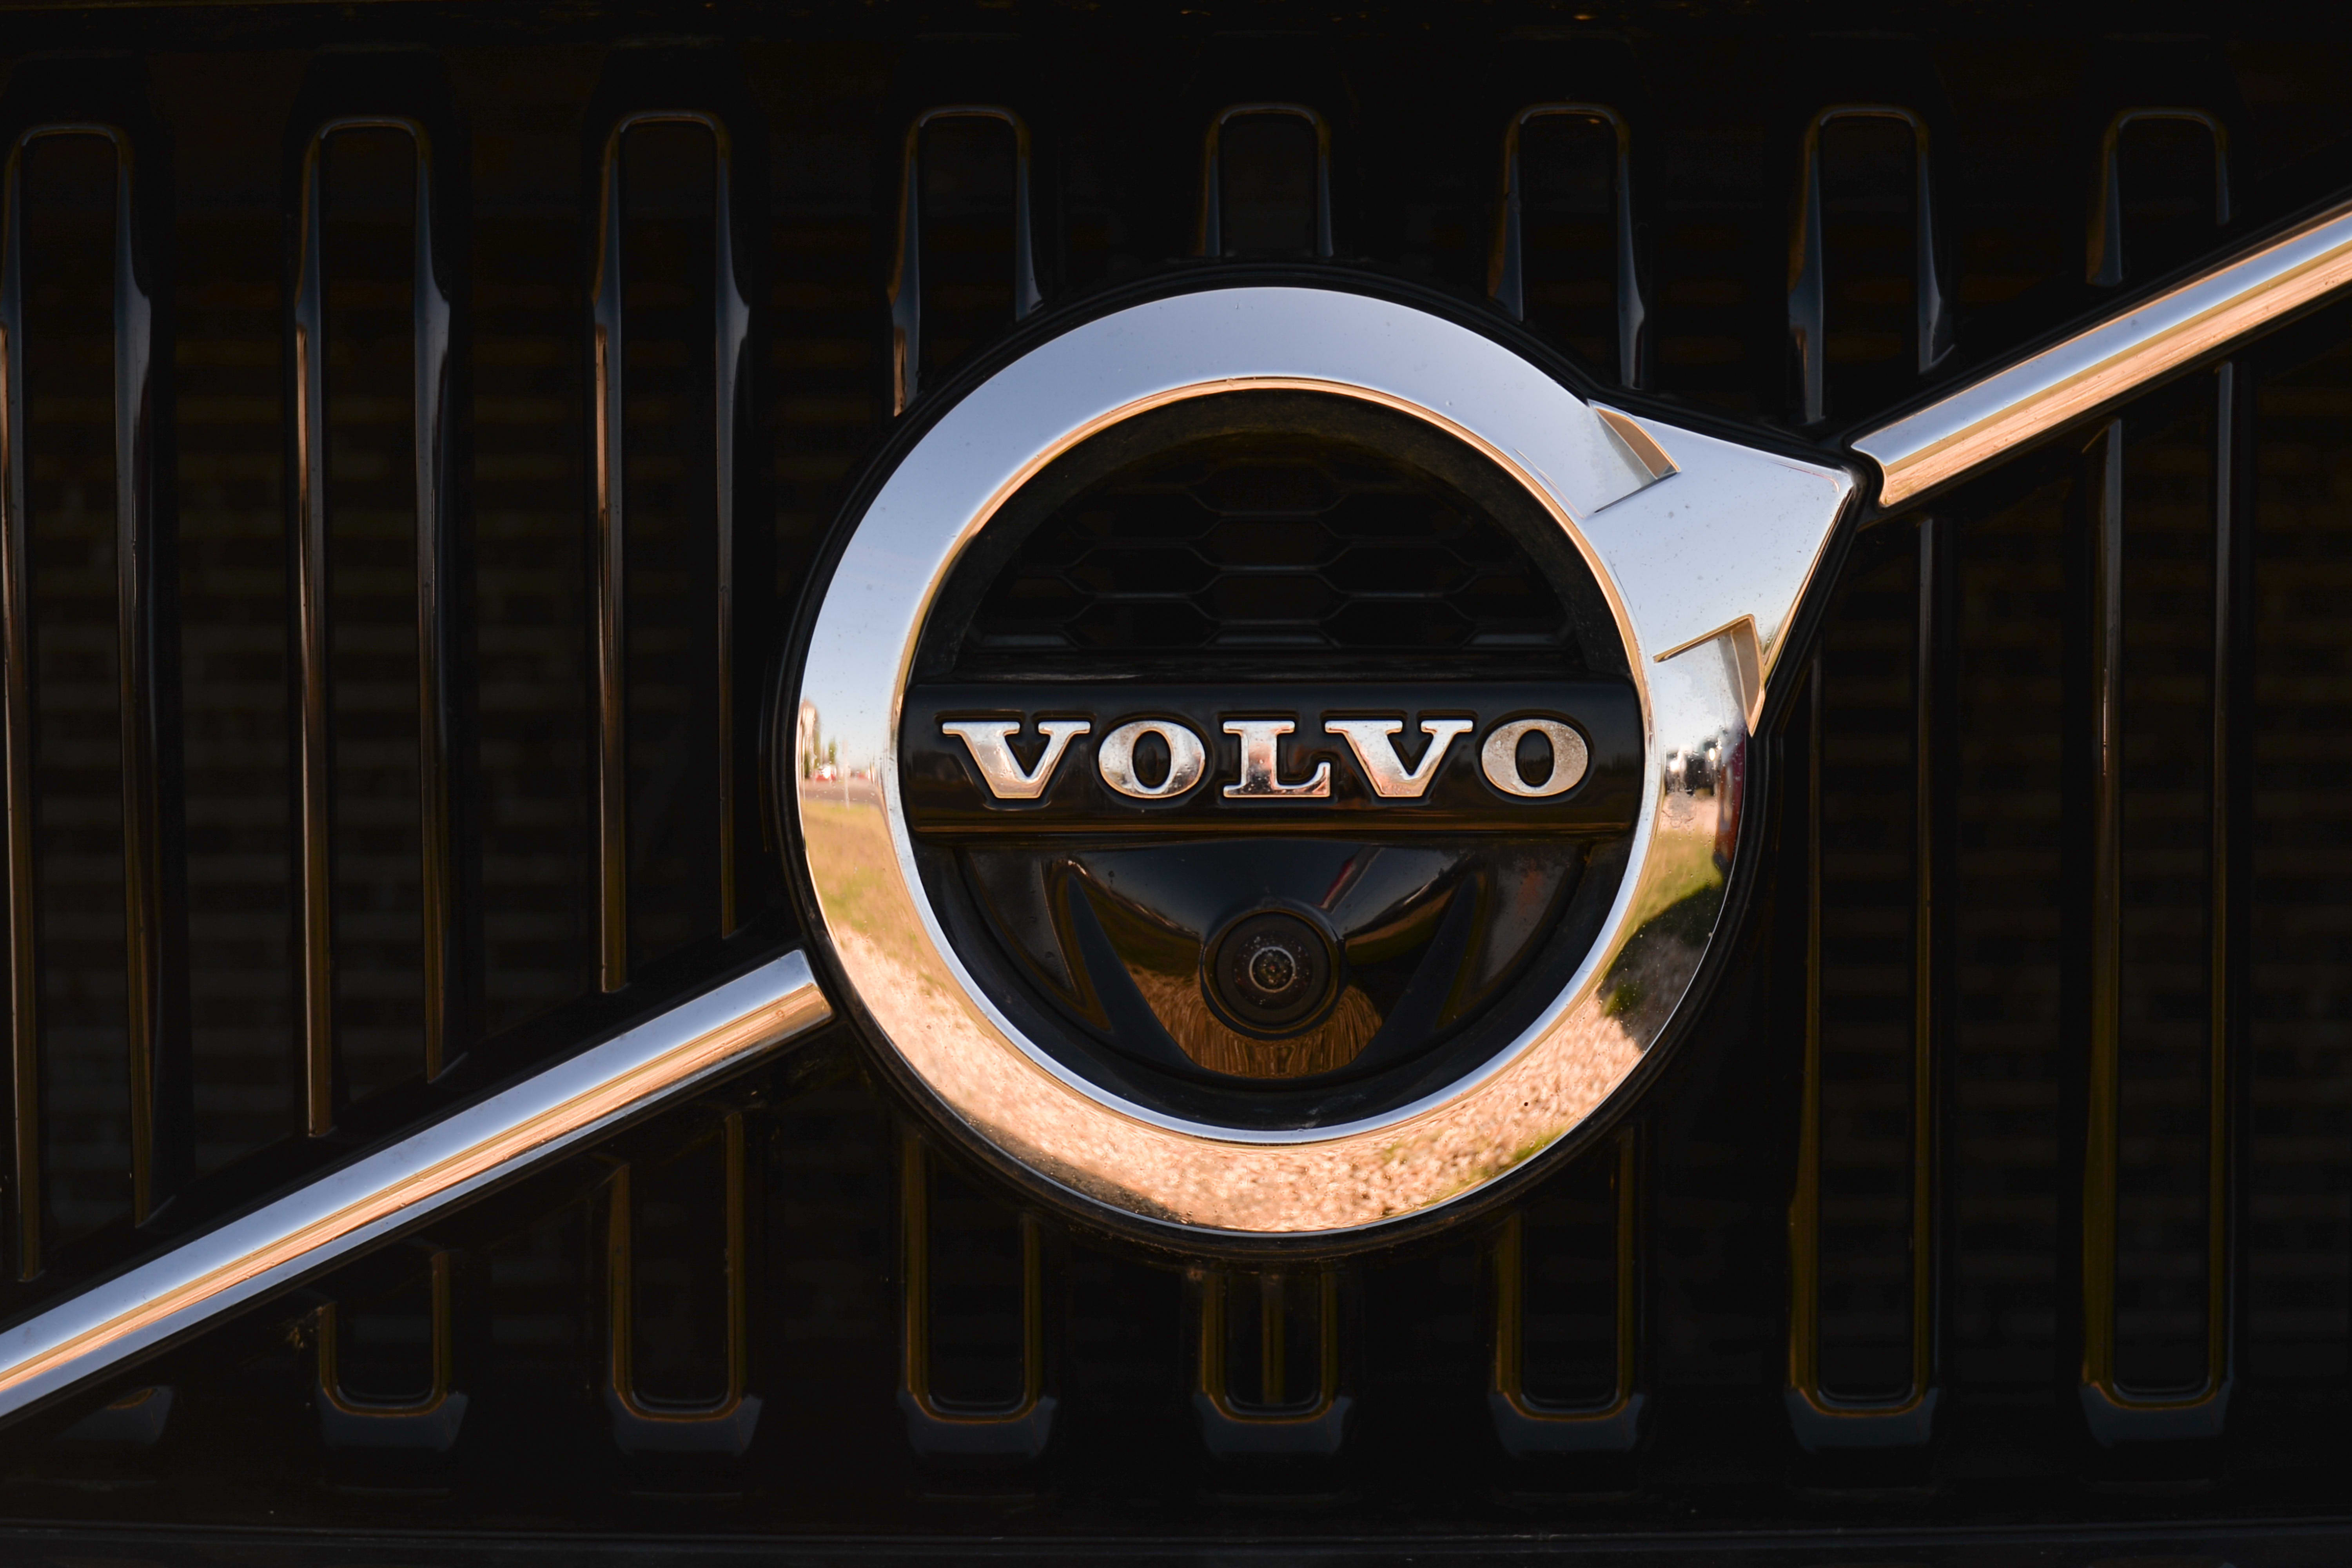 Volvo says it wants all its cars to be leather-free by 2030 - CNBC